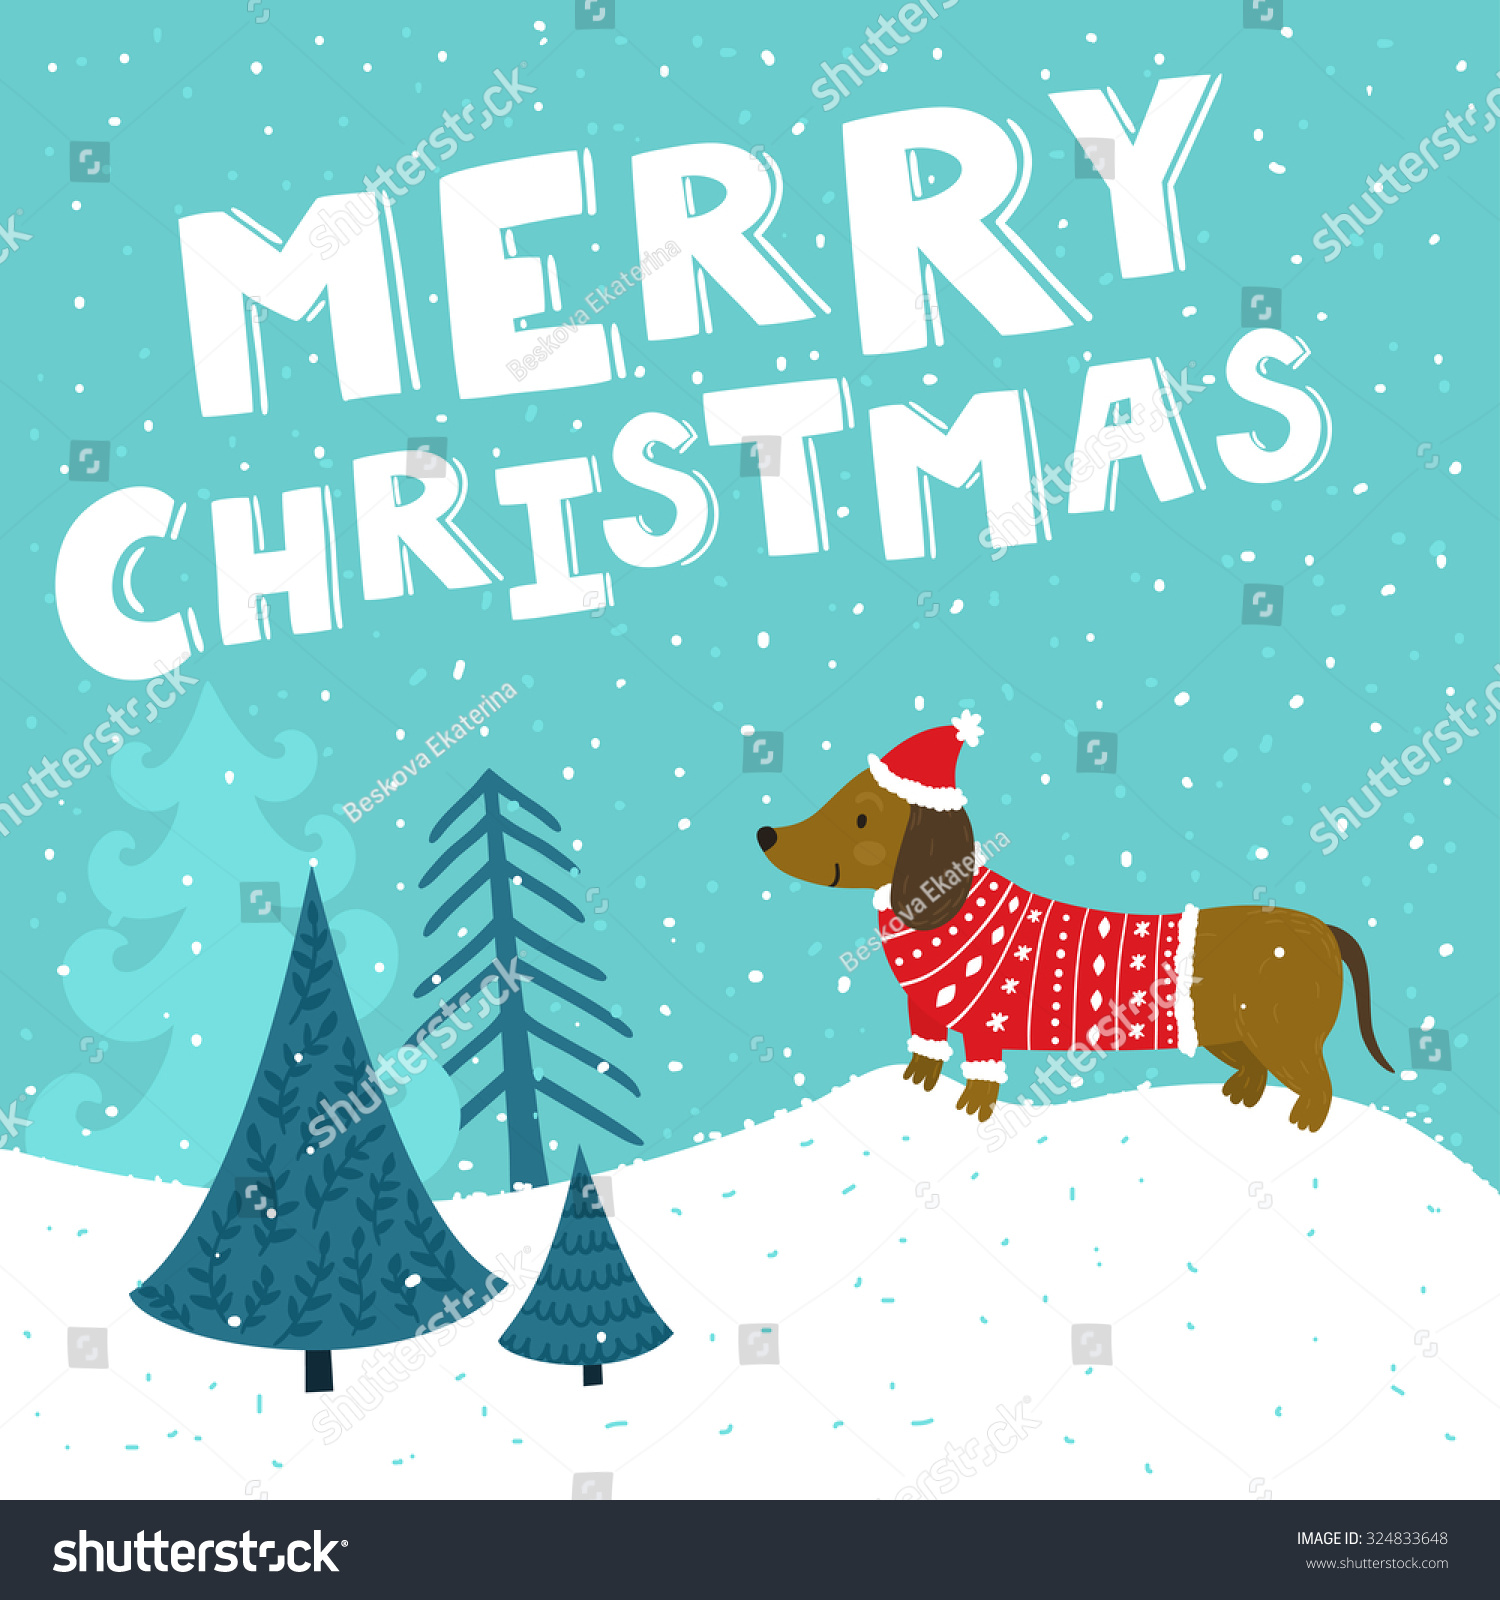 Vector christmas card cute dachshund santas stock vector 324833648 vector christmas card with cute dachshund in santas hat and knitted sweater holiday background with kristyandbryce Image collections